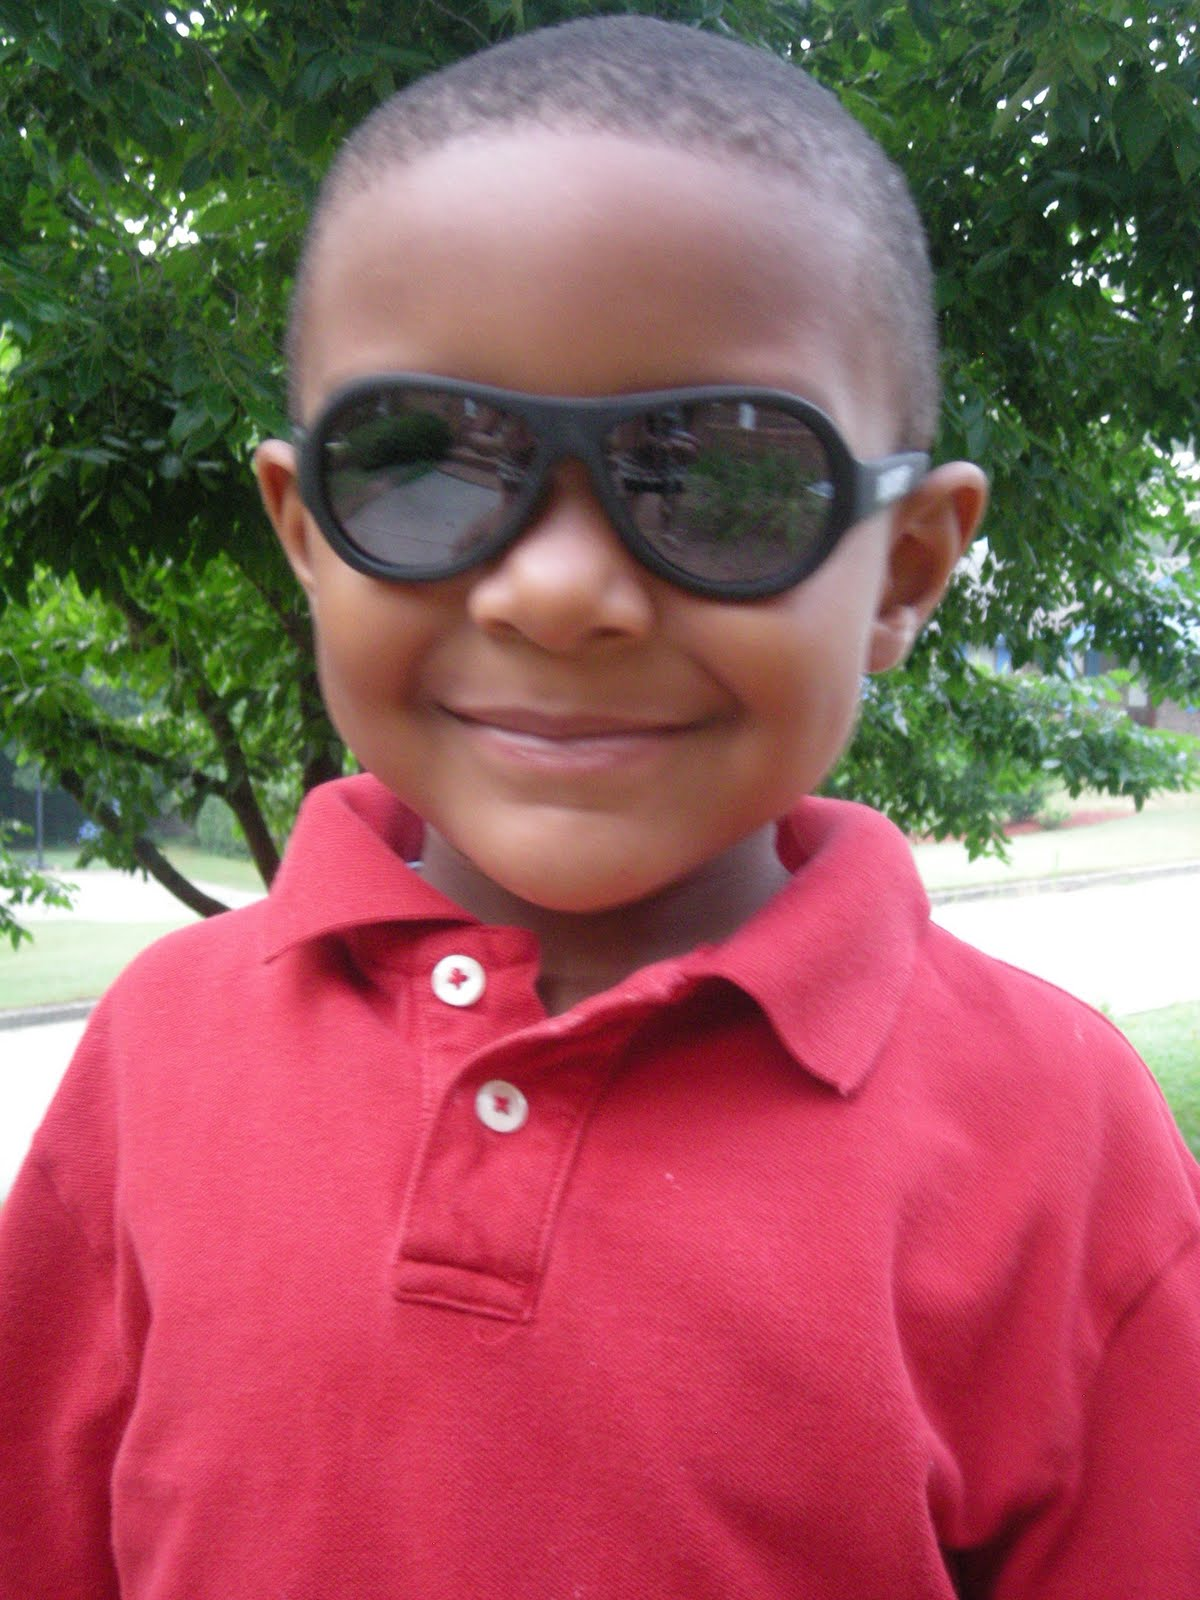 Sojourner Marable Grimmett New Babiators Sunglasses True Blue Classic Ages 3 7 May 2011 Moms Who Protect Their Children With Sunscreen Will Love The Stylish Baby Aviator Popping Up At Local Parks Playgrounds